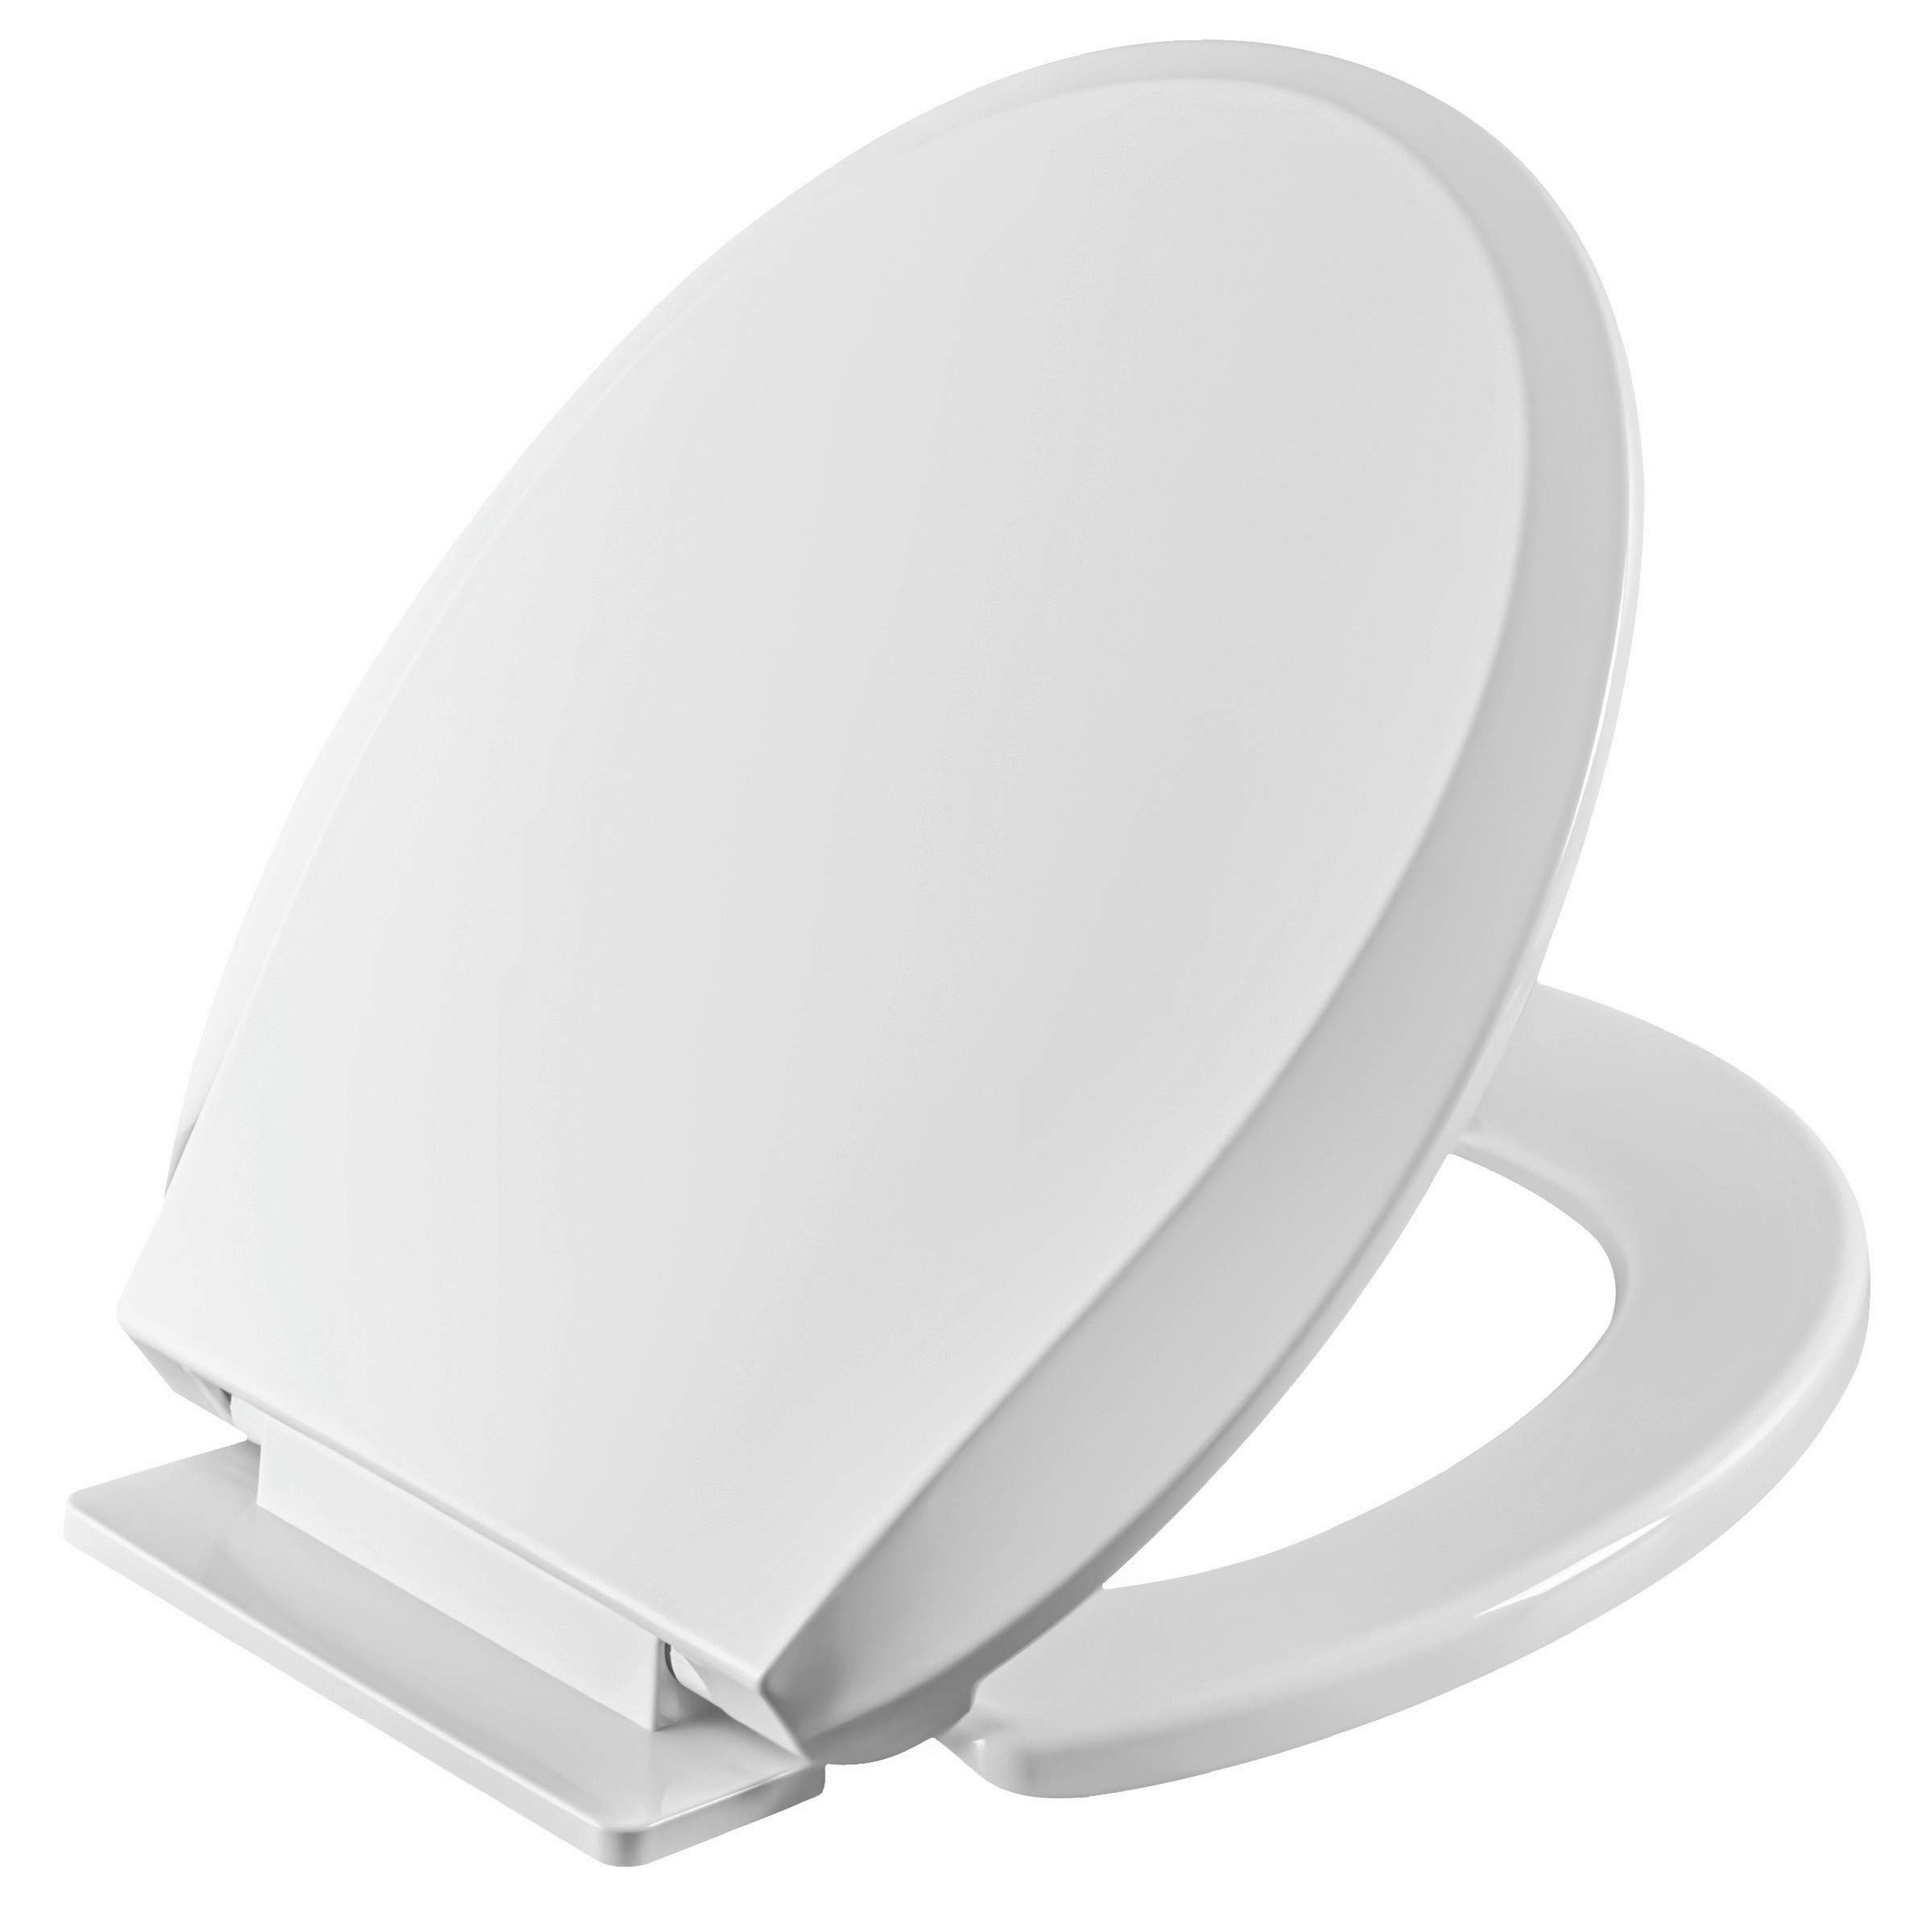 Winfield Heavy Duty Round Front Slow Close Toilet Seat with Hassle-Free Installation Kit, Easy Clean Hinges, Quiet Close Seat for American Standard, Kohler, Toto Toilet, White by Winfield